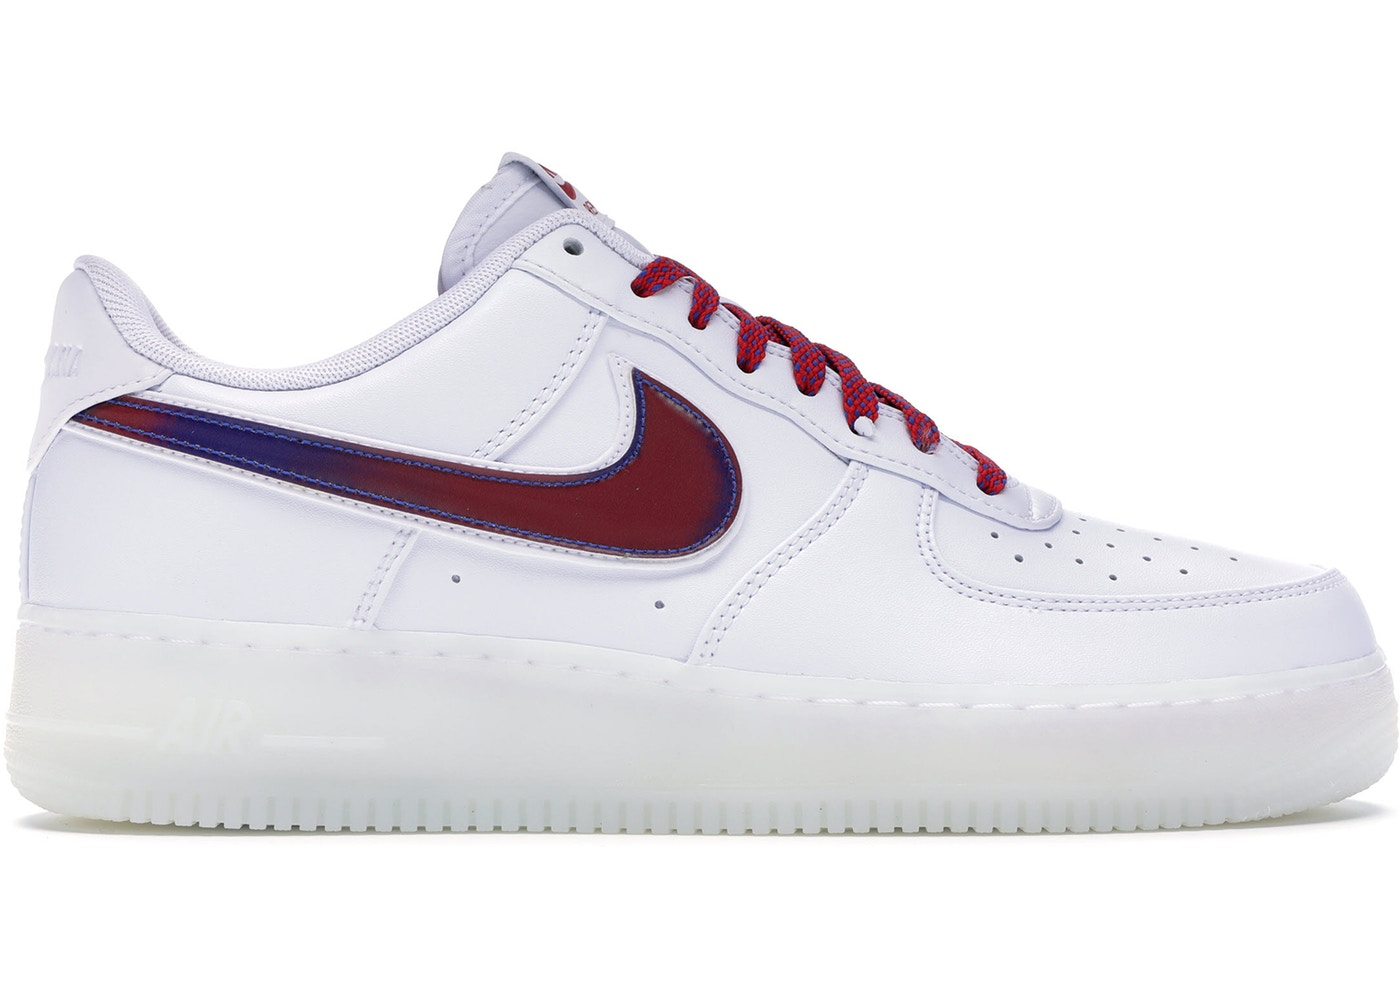 promo code bde26 30efb Buy Nike Air Force Shoes   Deadstock Sneakers